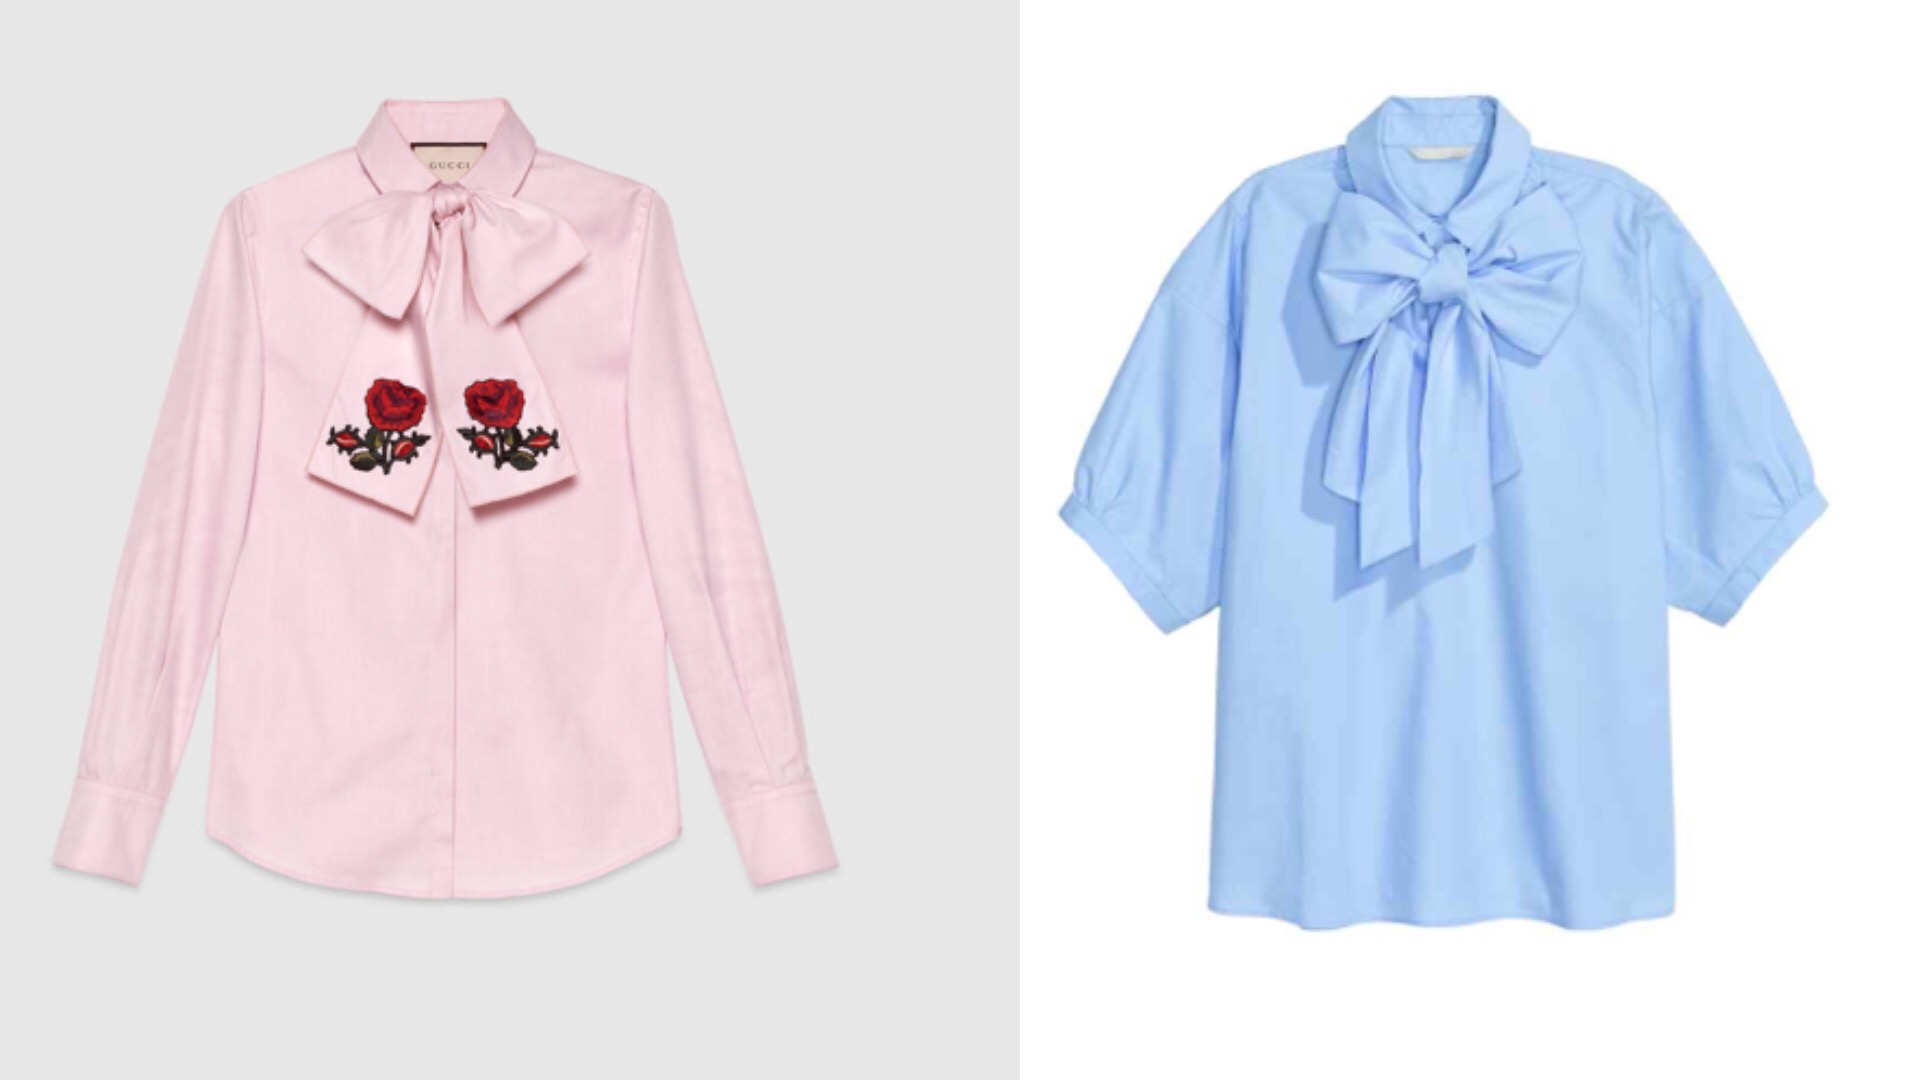 Gucci and HM pussy bow blouse